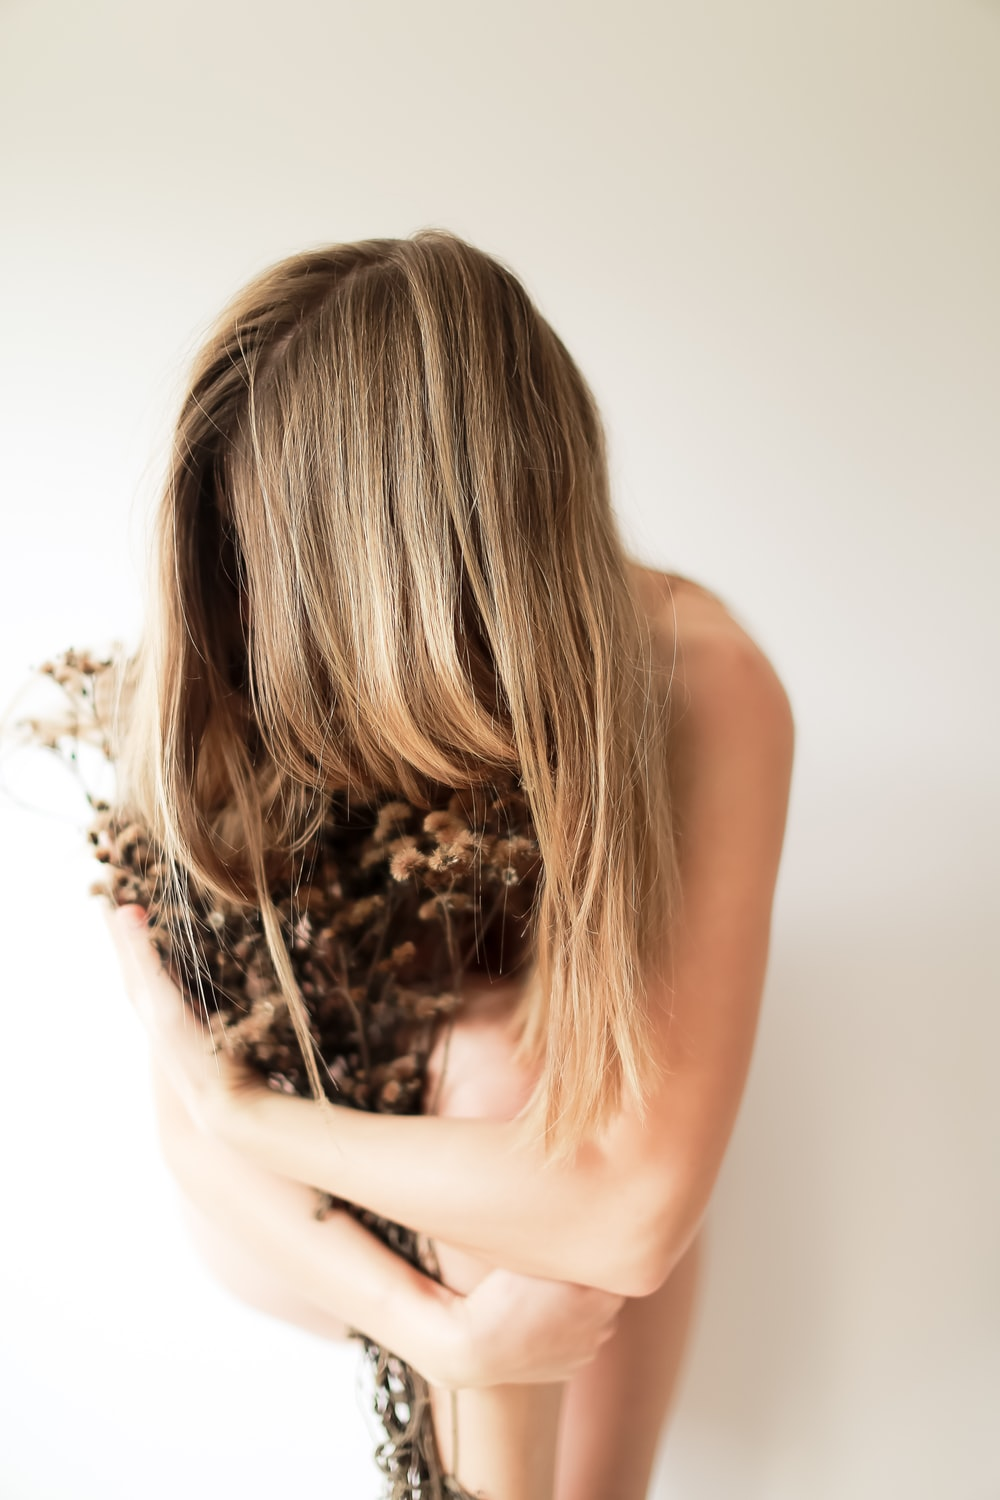 naked woman hugging dried plant